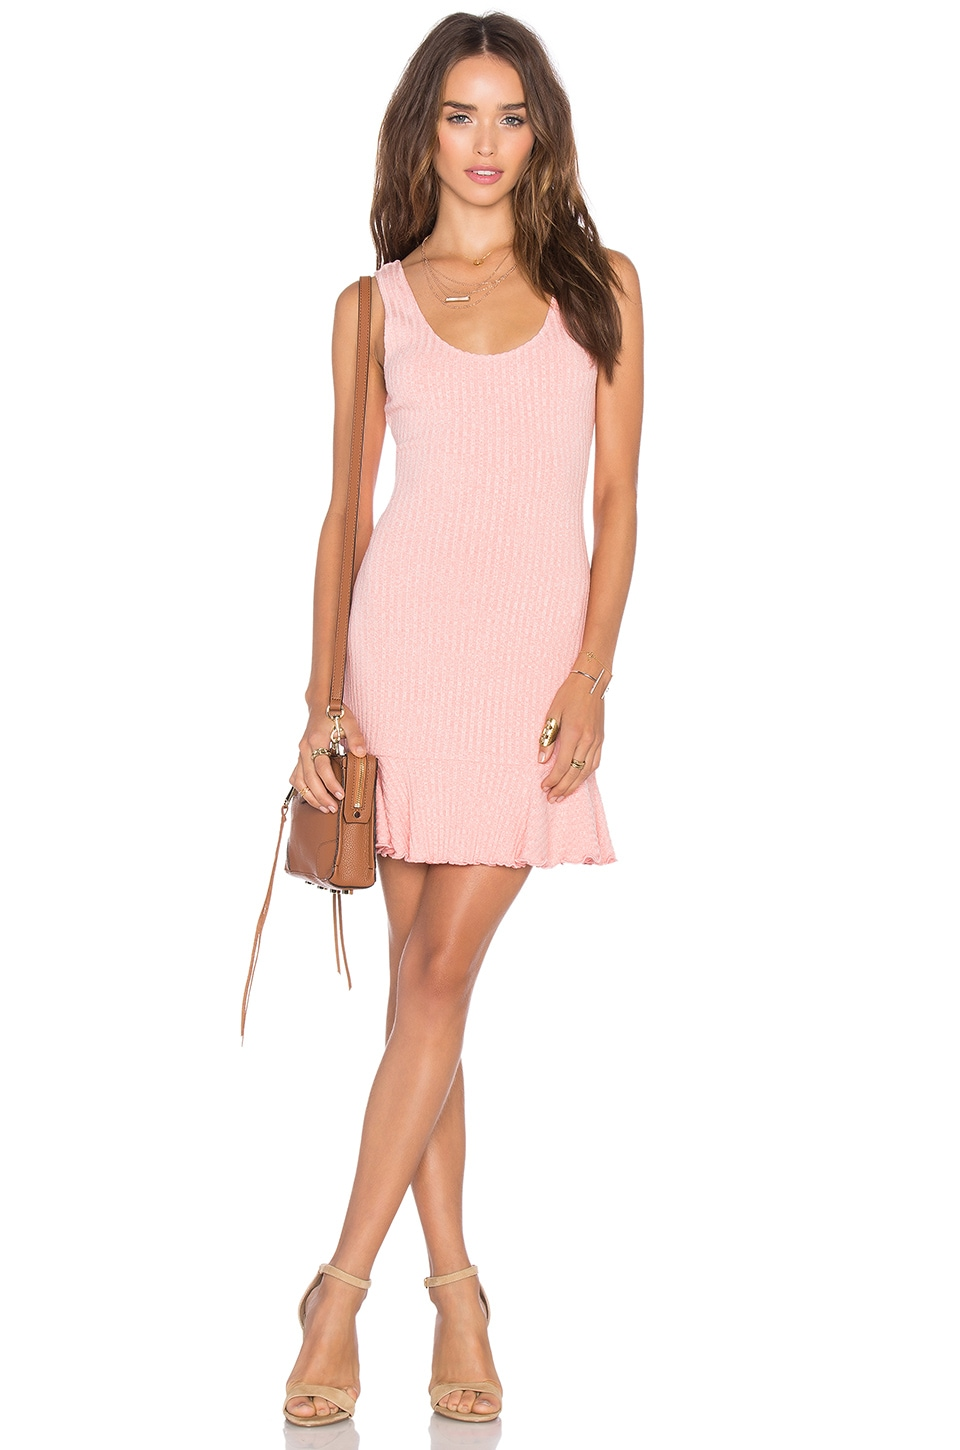 NBD There's Time Ribbed Dress in Heather Pink